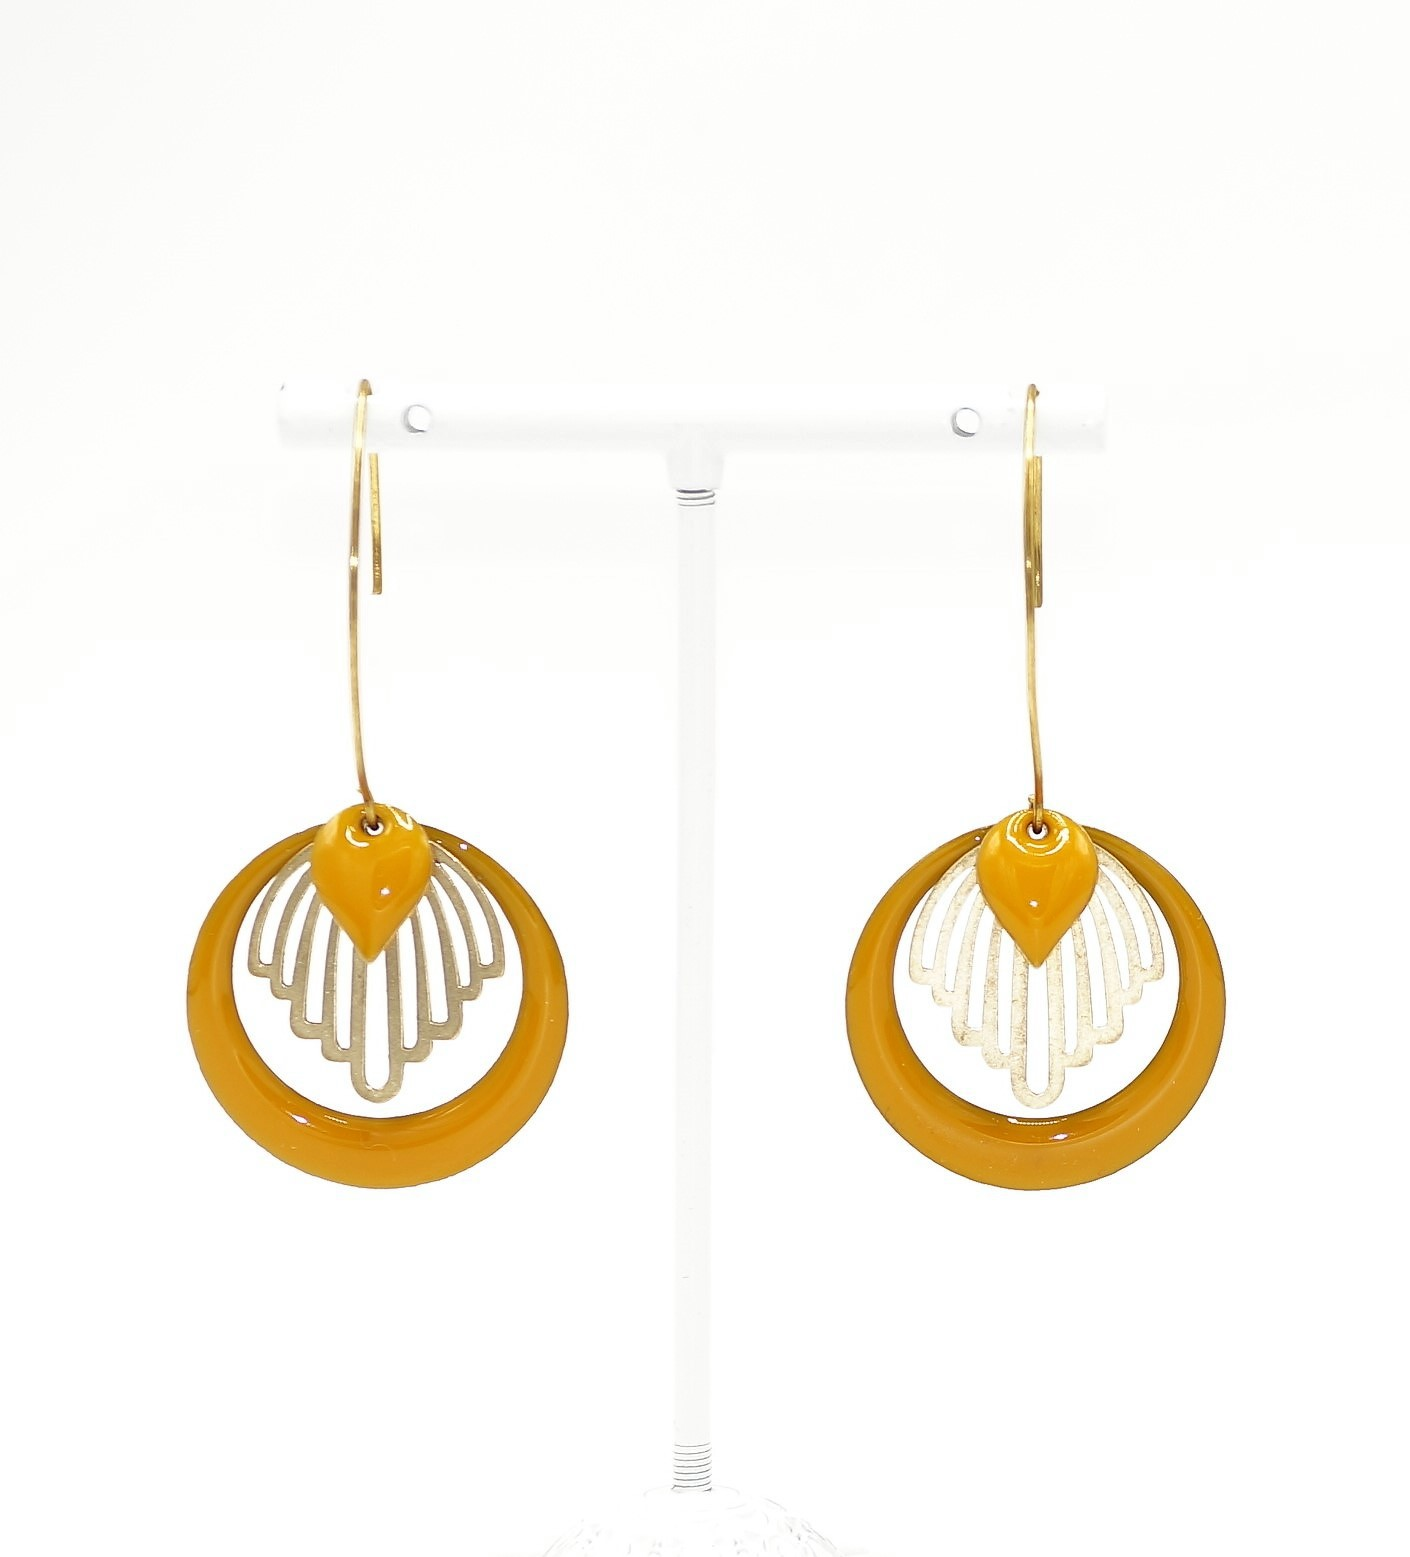 Retro Amy earrings, Be Chic Jewels